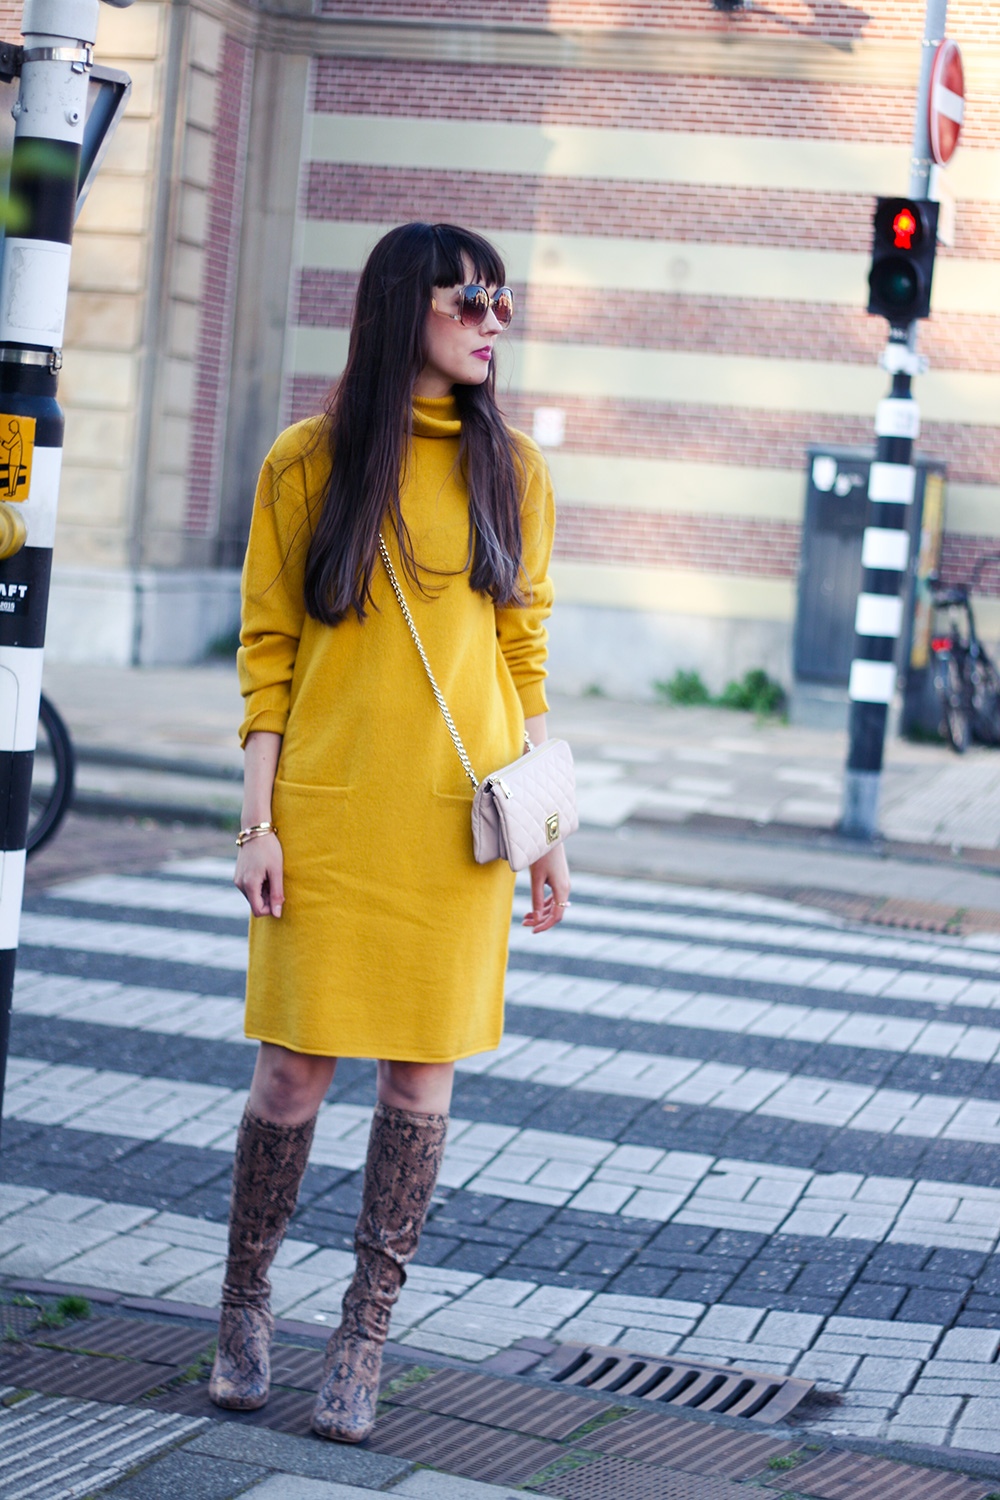 Pass me the mustard – A Dash Of Fash